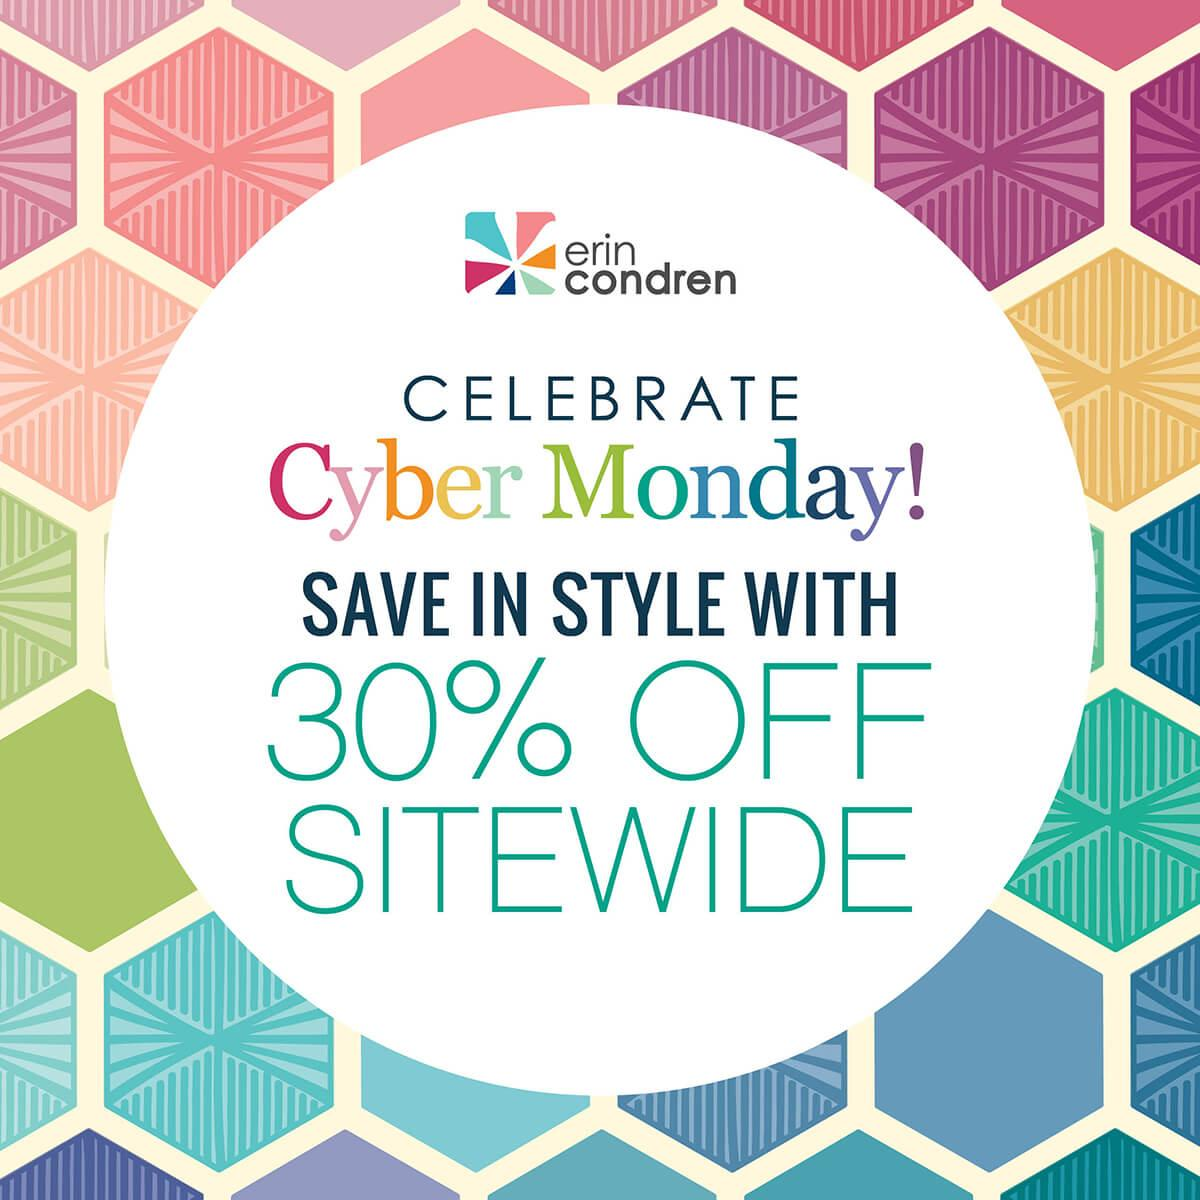 EXTENDED: Erin Condren Cyber Monday Sale – Save 30% Off EVERYTHING!